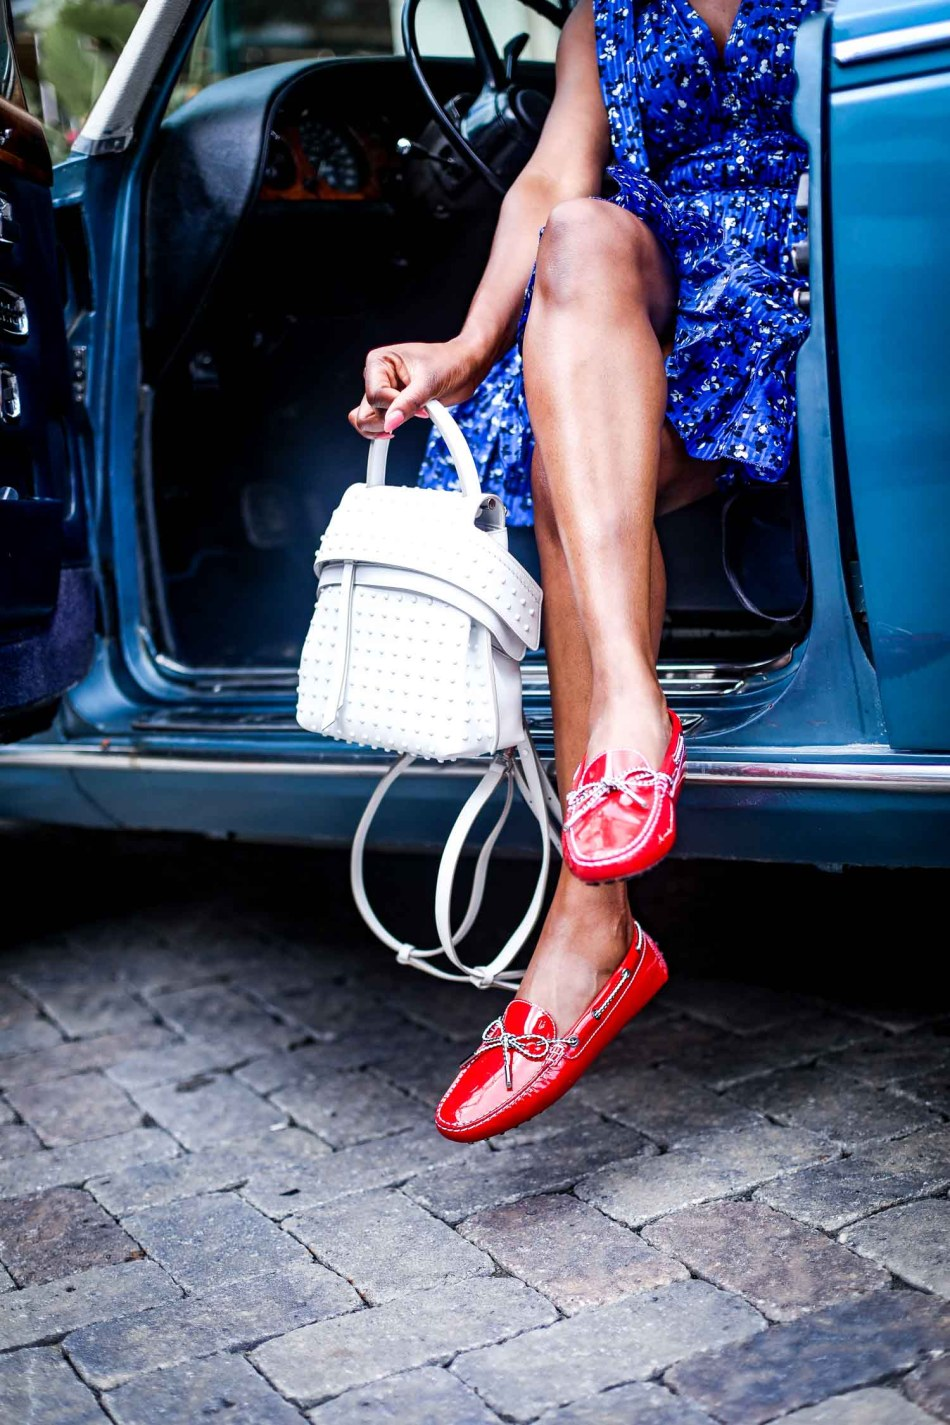 Atlanta-blogger-wearing-Tod's-Gommino-Driving-Shoes-and-Tod-white-bag-in-a-Rolls-Royce-9.jpg